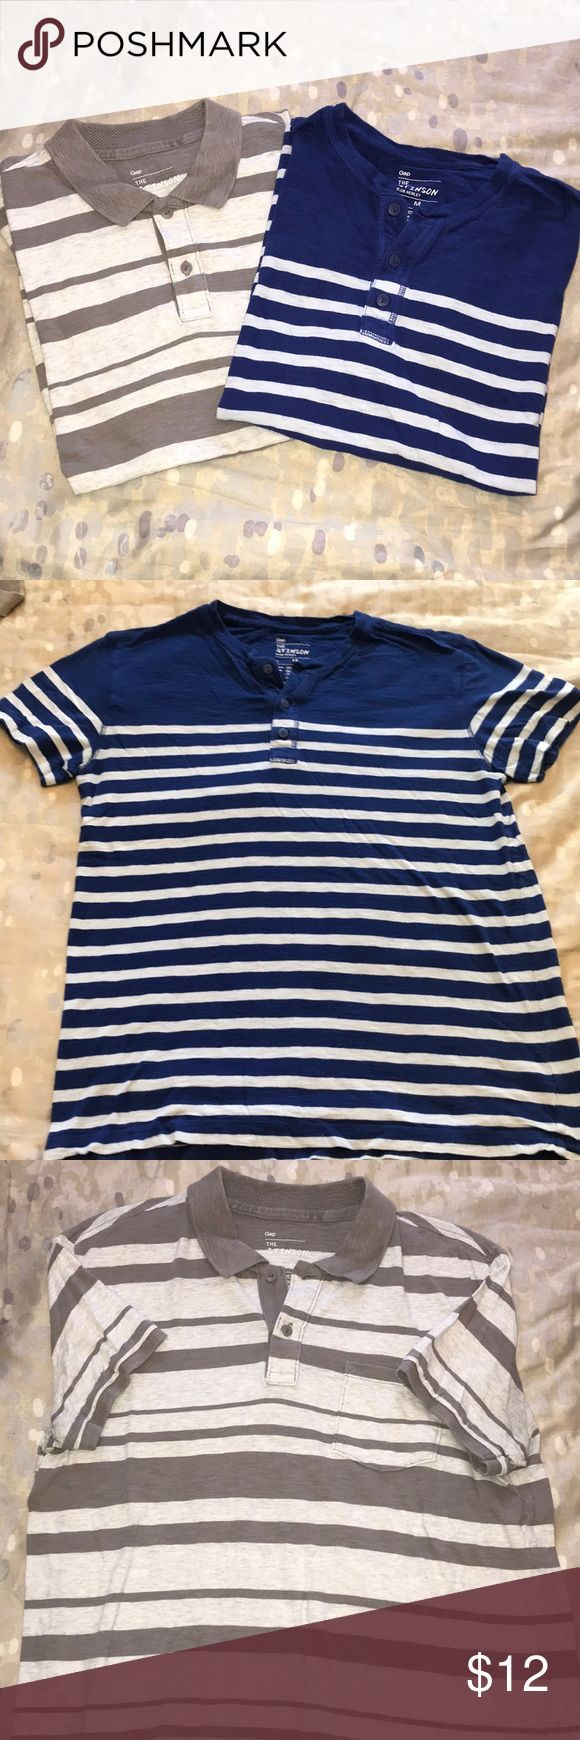 GAP Henley/ Polo Shirt Bundle (M) Both Size M, good condition. Blue Henley with buttons and white stripes. Light and Dark Grey striped polo with pocket, collar, and buttons. Very classy and comfortable. GAP Shirts Polos